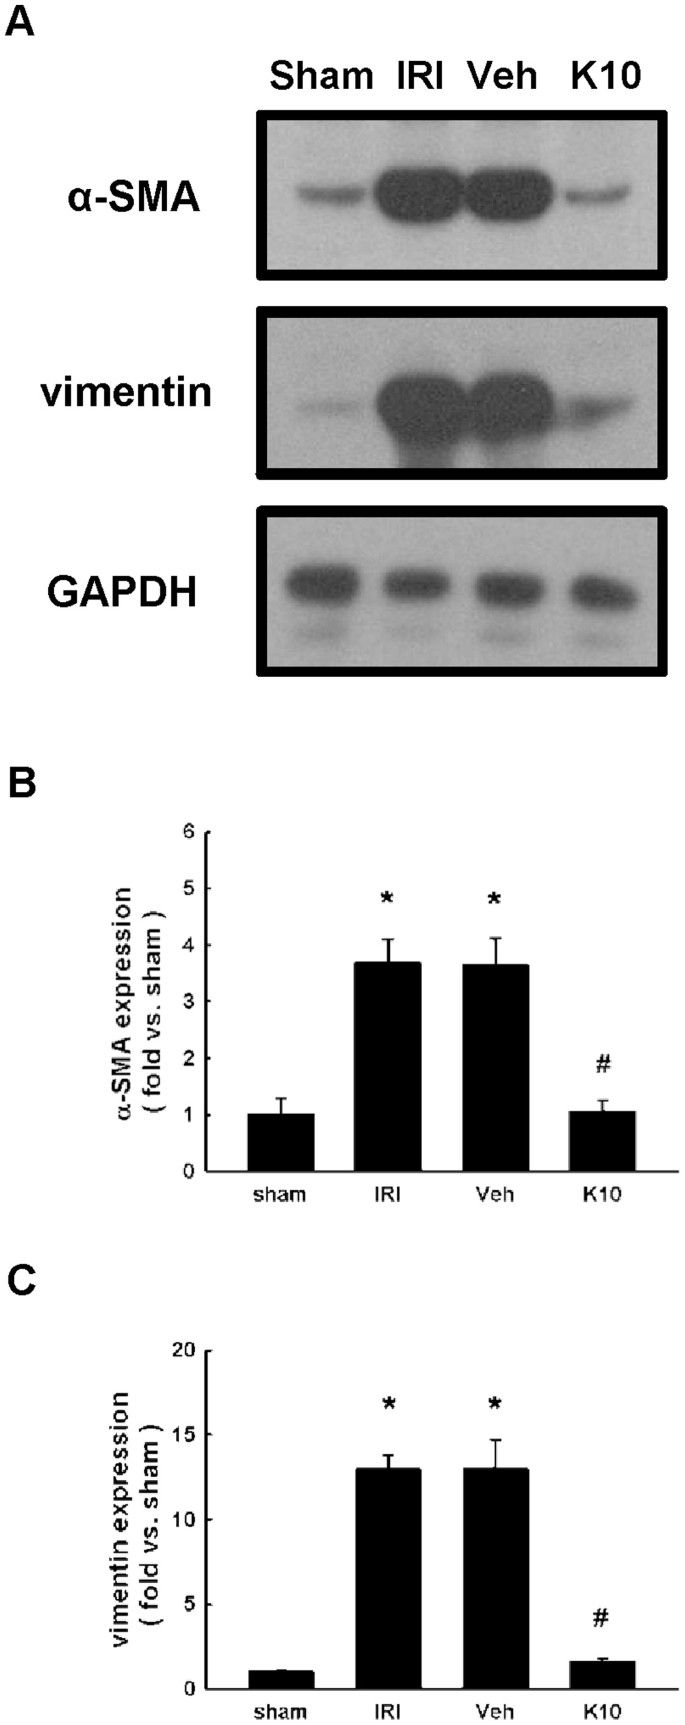 Antifibrotic effects of KS370G, a caffeamide derivative, in renal  ischemia-reperfusion injured mice and renal tubular epithelial cells |  Scientific Reports